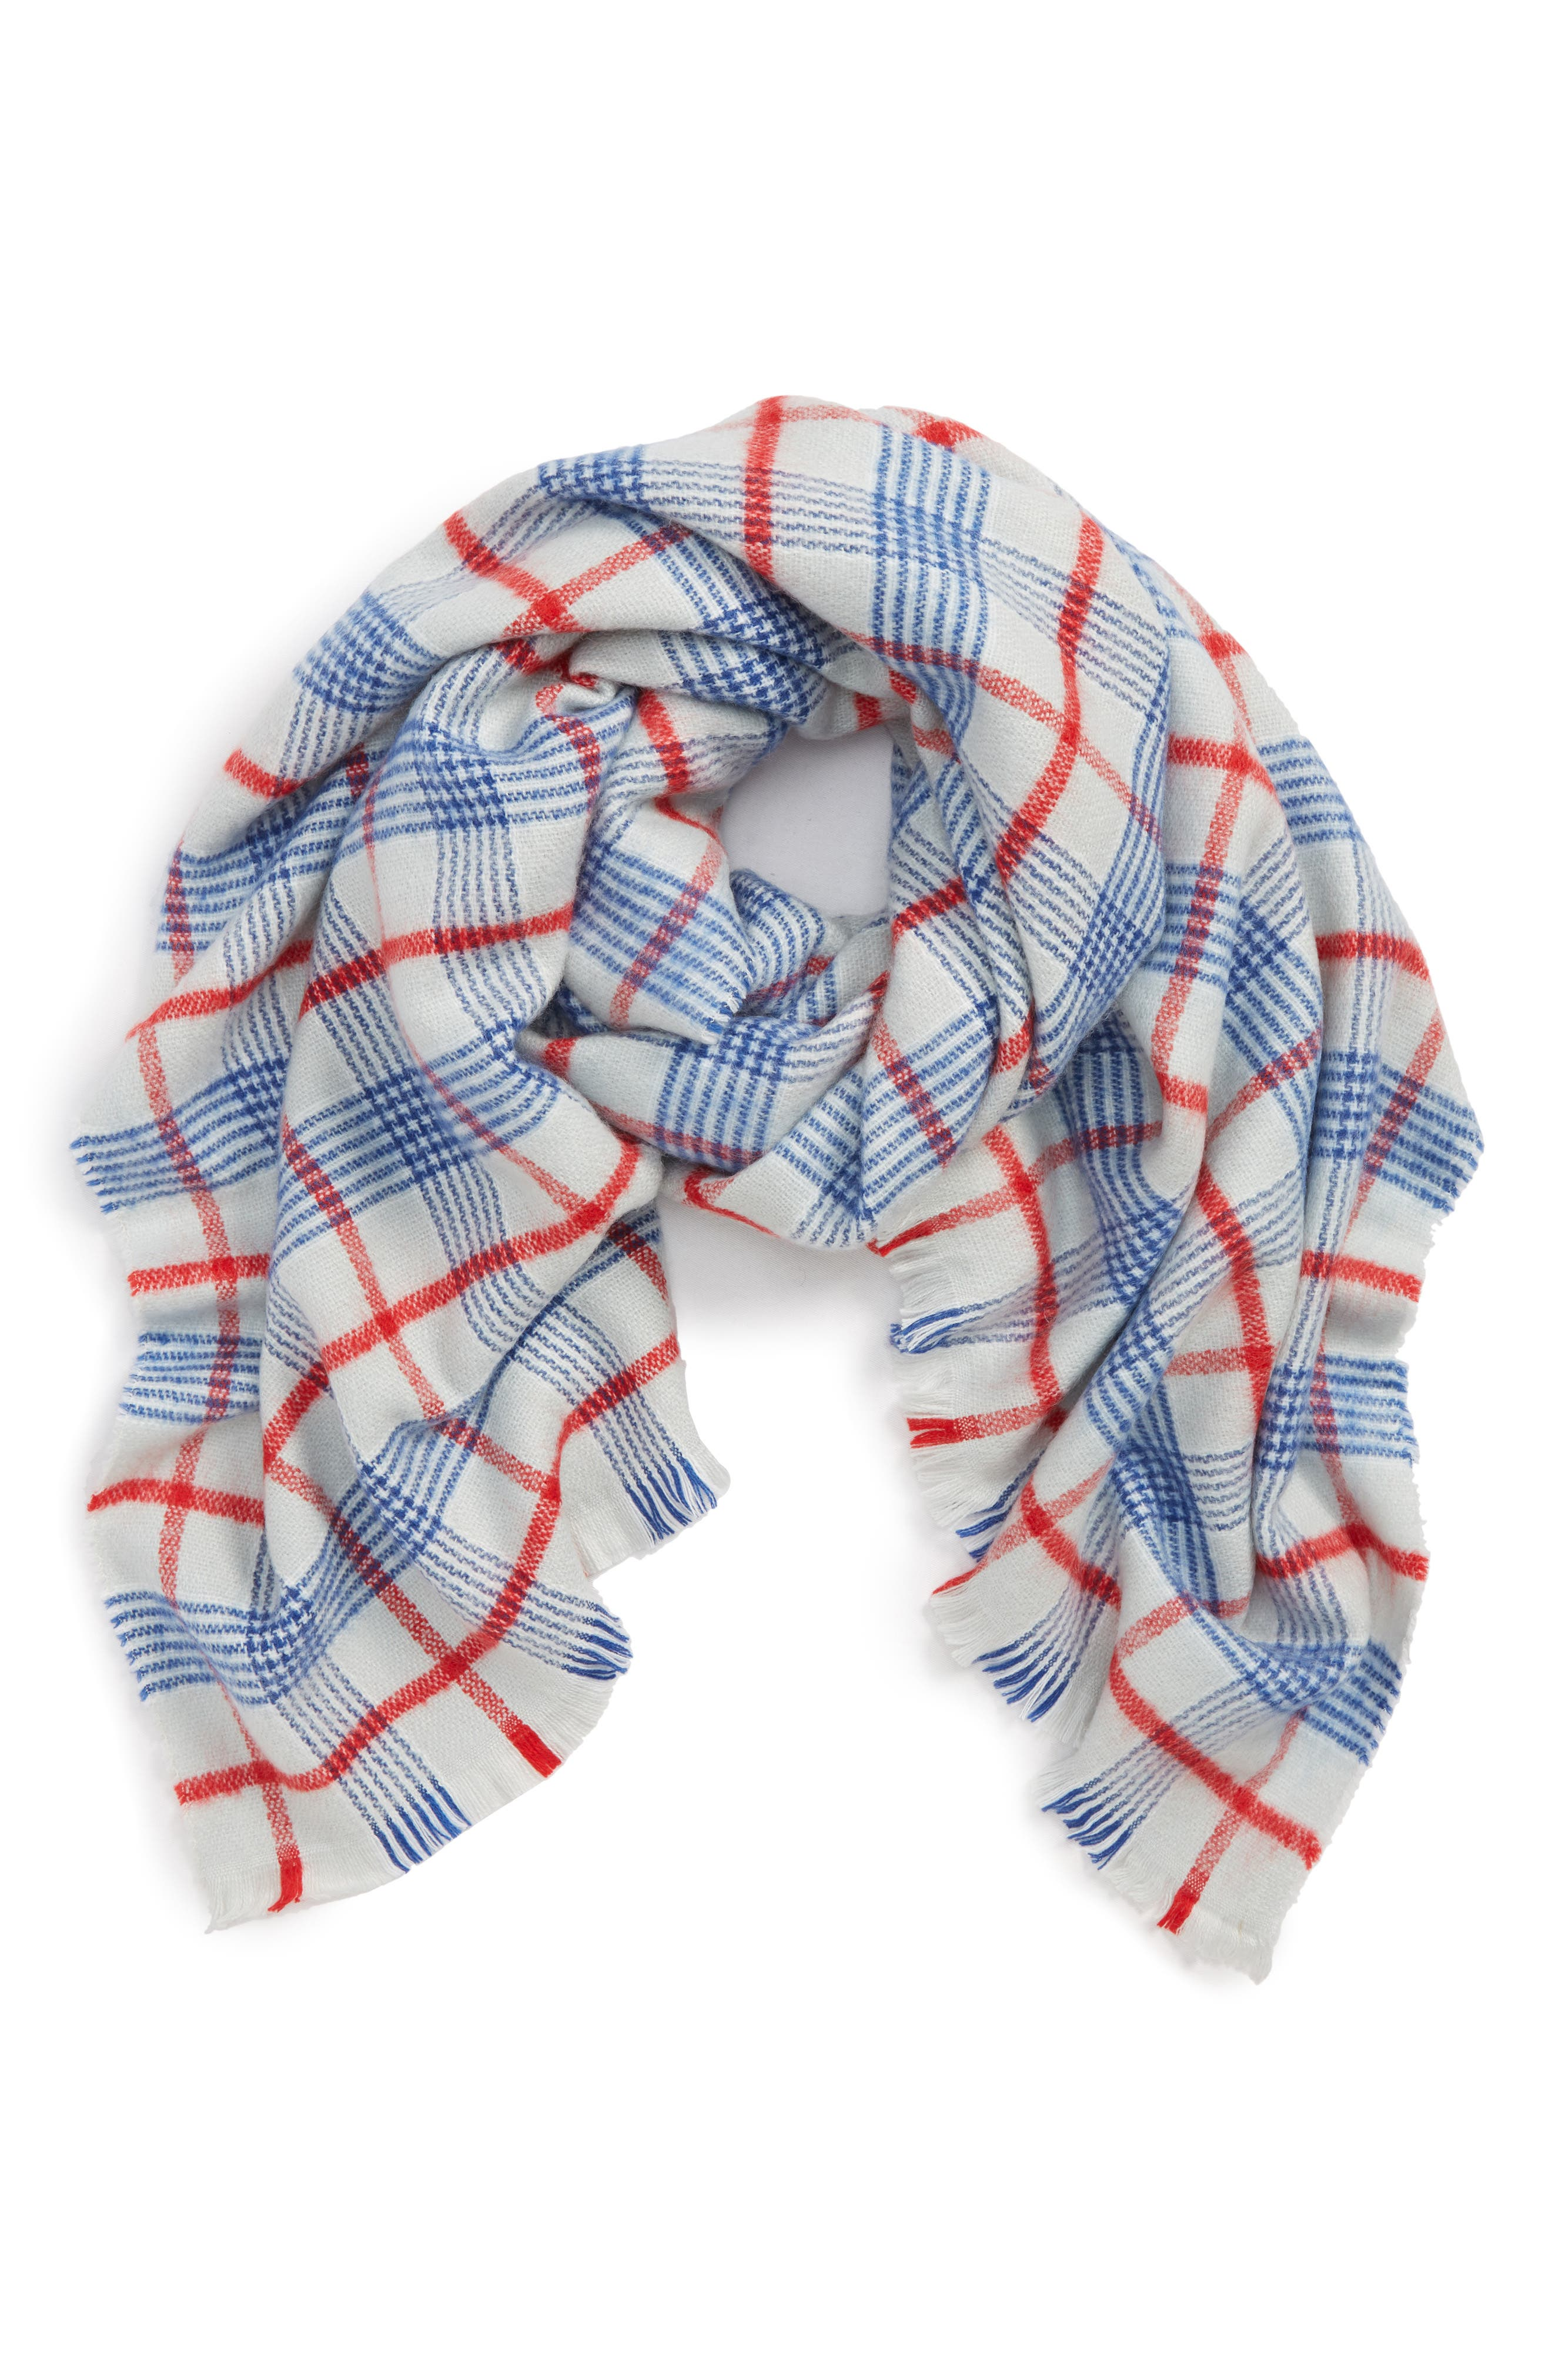 Tartan Plaid Scarf,                             Main thumbnail 1, color,                             GREY/ BLUE